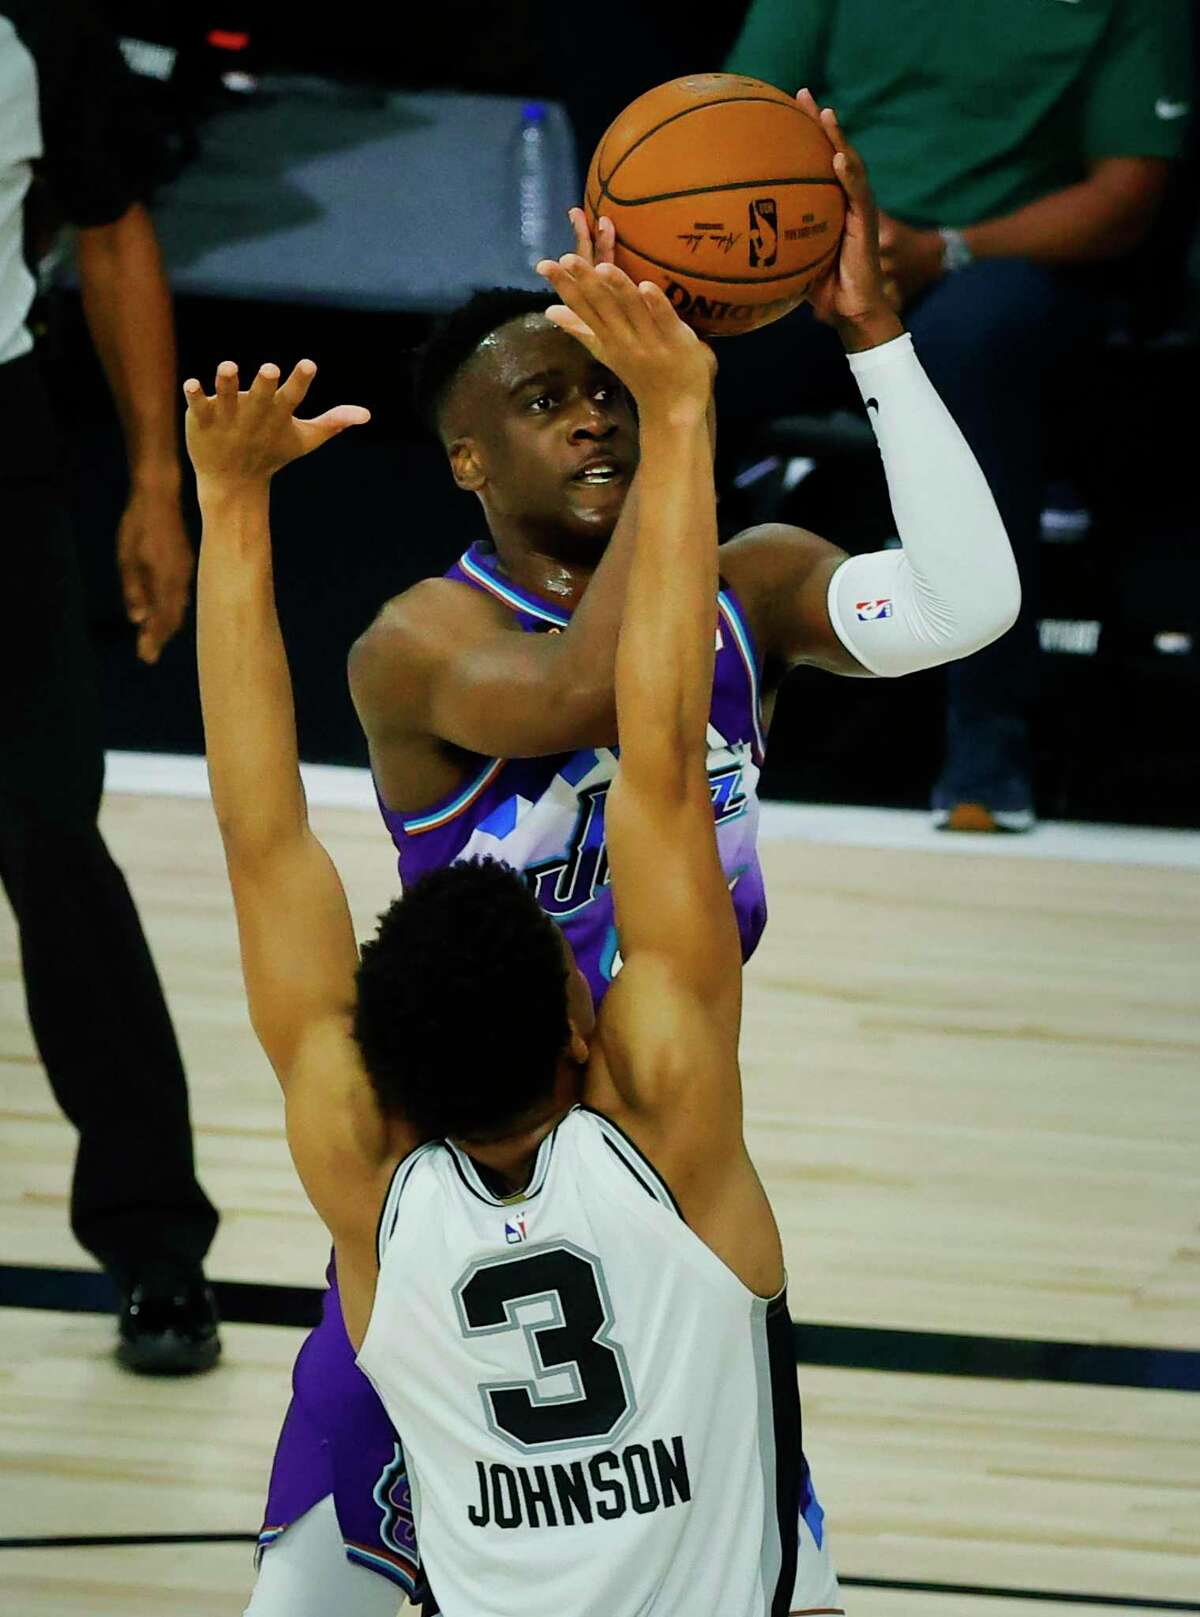 Former Yale star Miye Oni puts up a shot for the Utah Jazz in a loss to San Antonio on Friday. Oni had 14 points and seven rebounds in 30 minutes in his first career start.